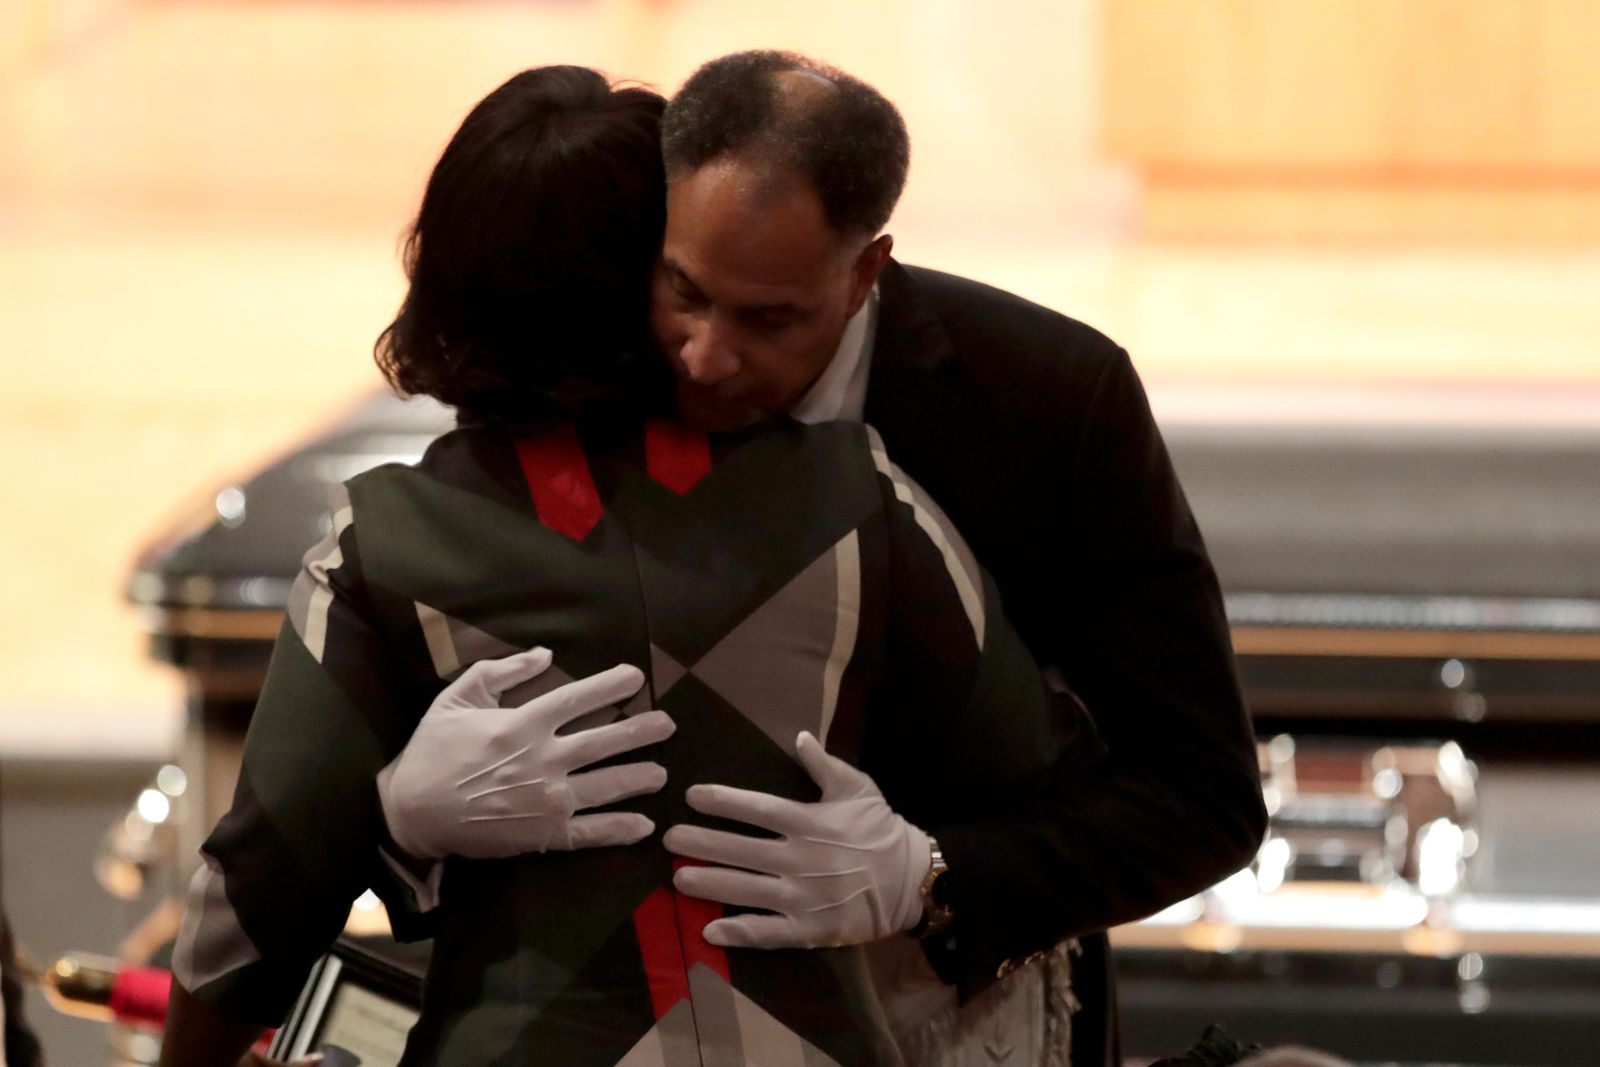 Emmanuel Stanley, grand master of Most Worshipful Prince Hall Grand Lodge of Maryland, right, hugs Maya Rockeymoore, widow of U.S. Rep. Elijah Cummings, during a viewing service at Morgan State University, Wednesday, Oct. 23, 2019, in Baltimore. The Maryland congressman and civil rights champion died Thursday, Oct. 17, at age 68 of complications from long-standing health issues. (AP Photo/Julio Cortez)